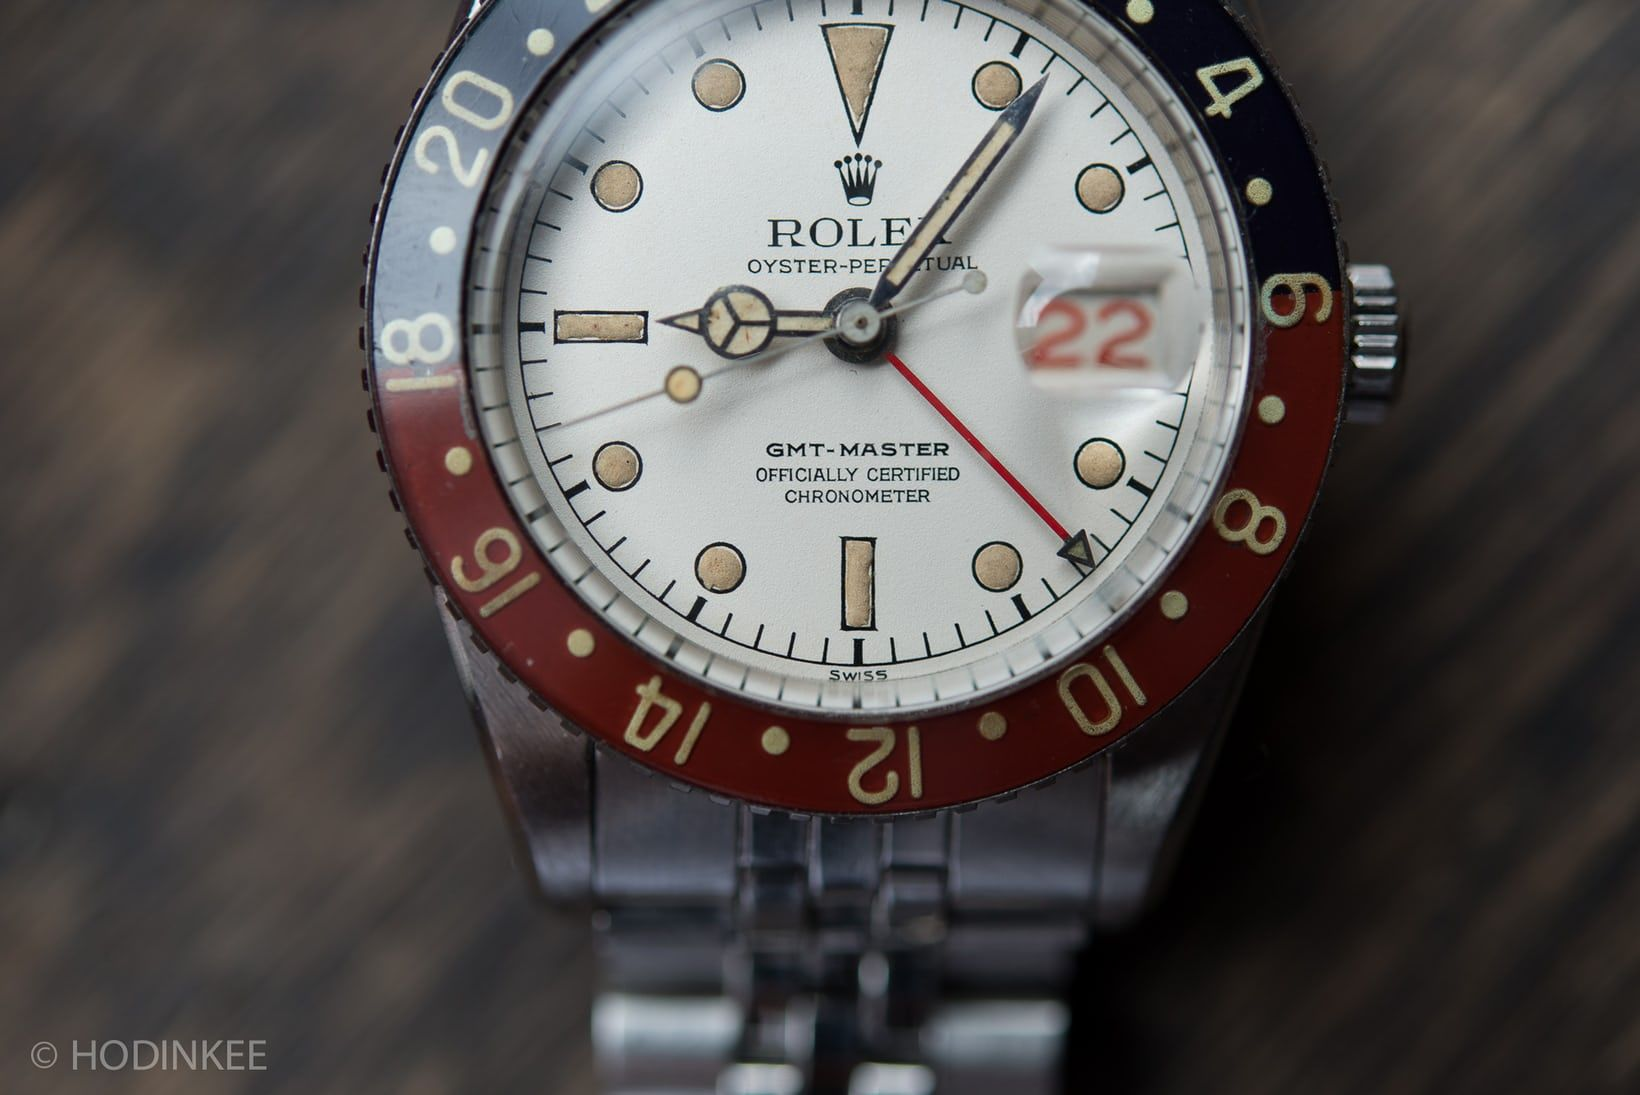 Found: An Example Of The Legendary Albino Rolex GMT-Master Reference 6542 (Live Pics, Thoughts) - HODINKEE